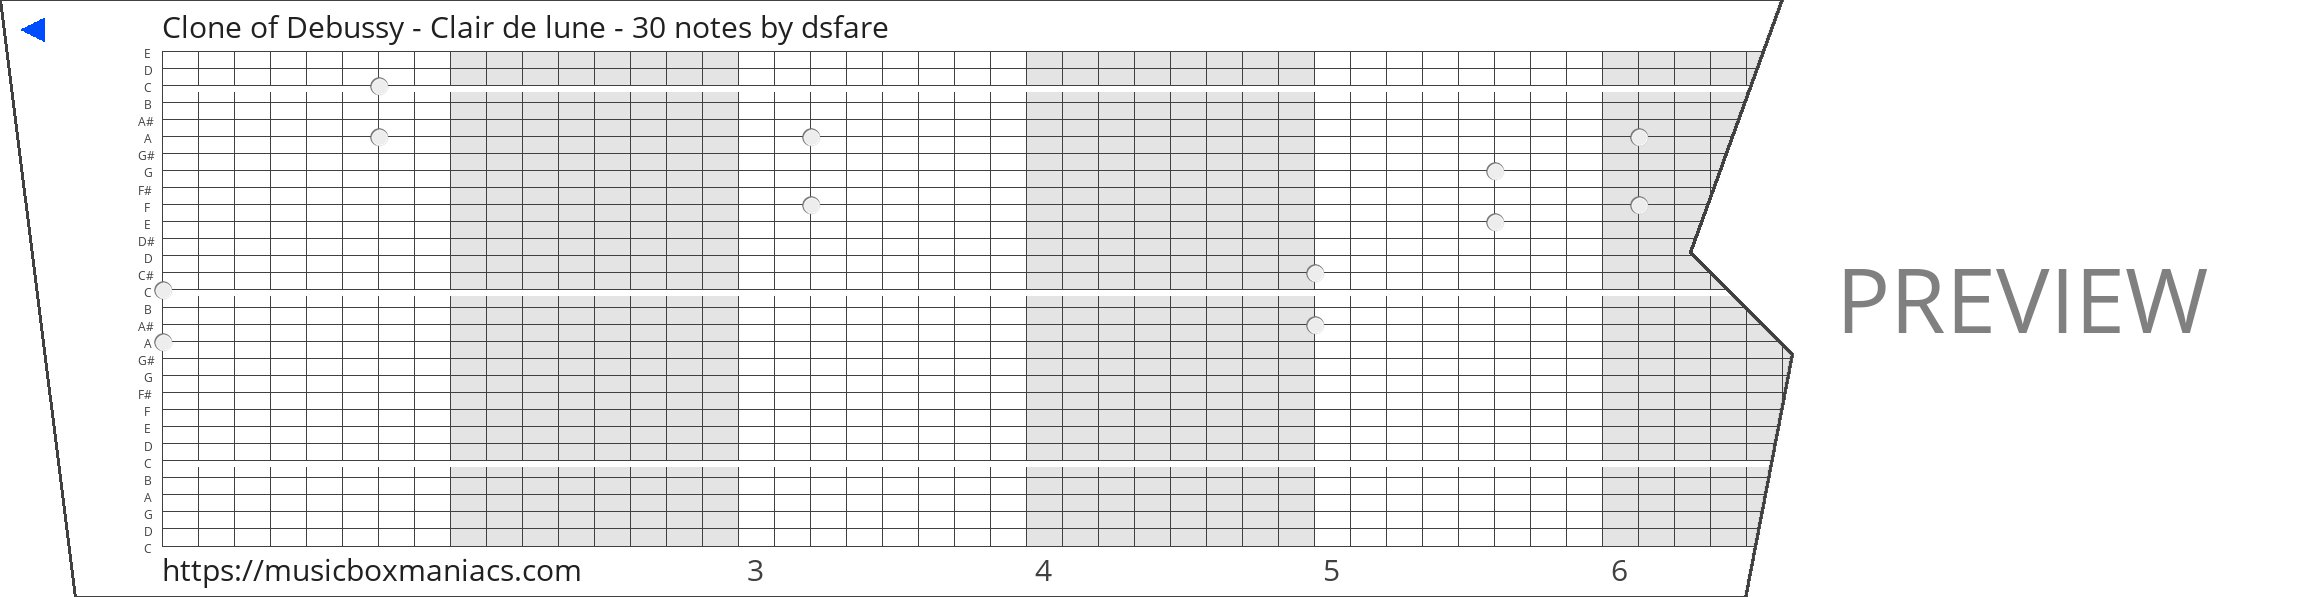 Clone of Debussy - Clair de lune - 30 notes 30 note music box paper strip